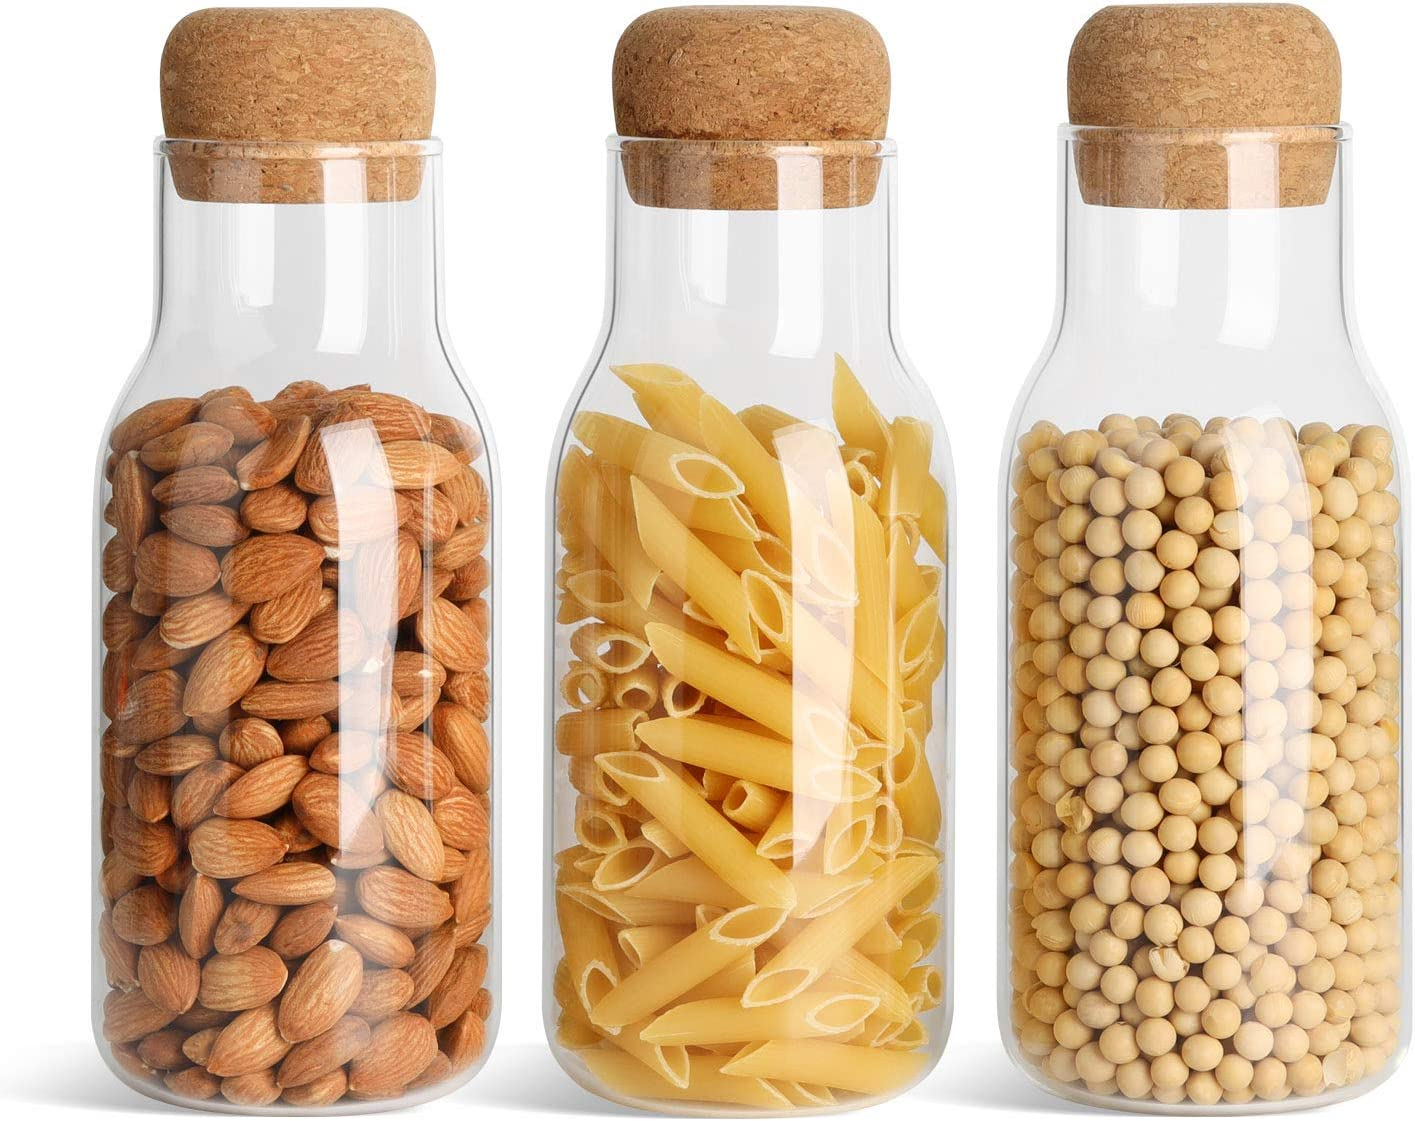 ComSaf Glass Food Storage Canister with Cork Airtight Lid 23oz 1 year warranty Oakland Mall